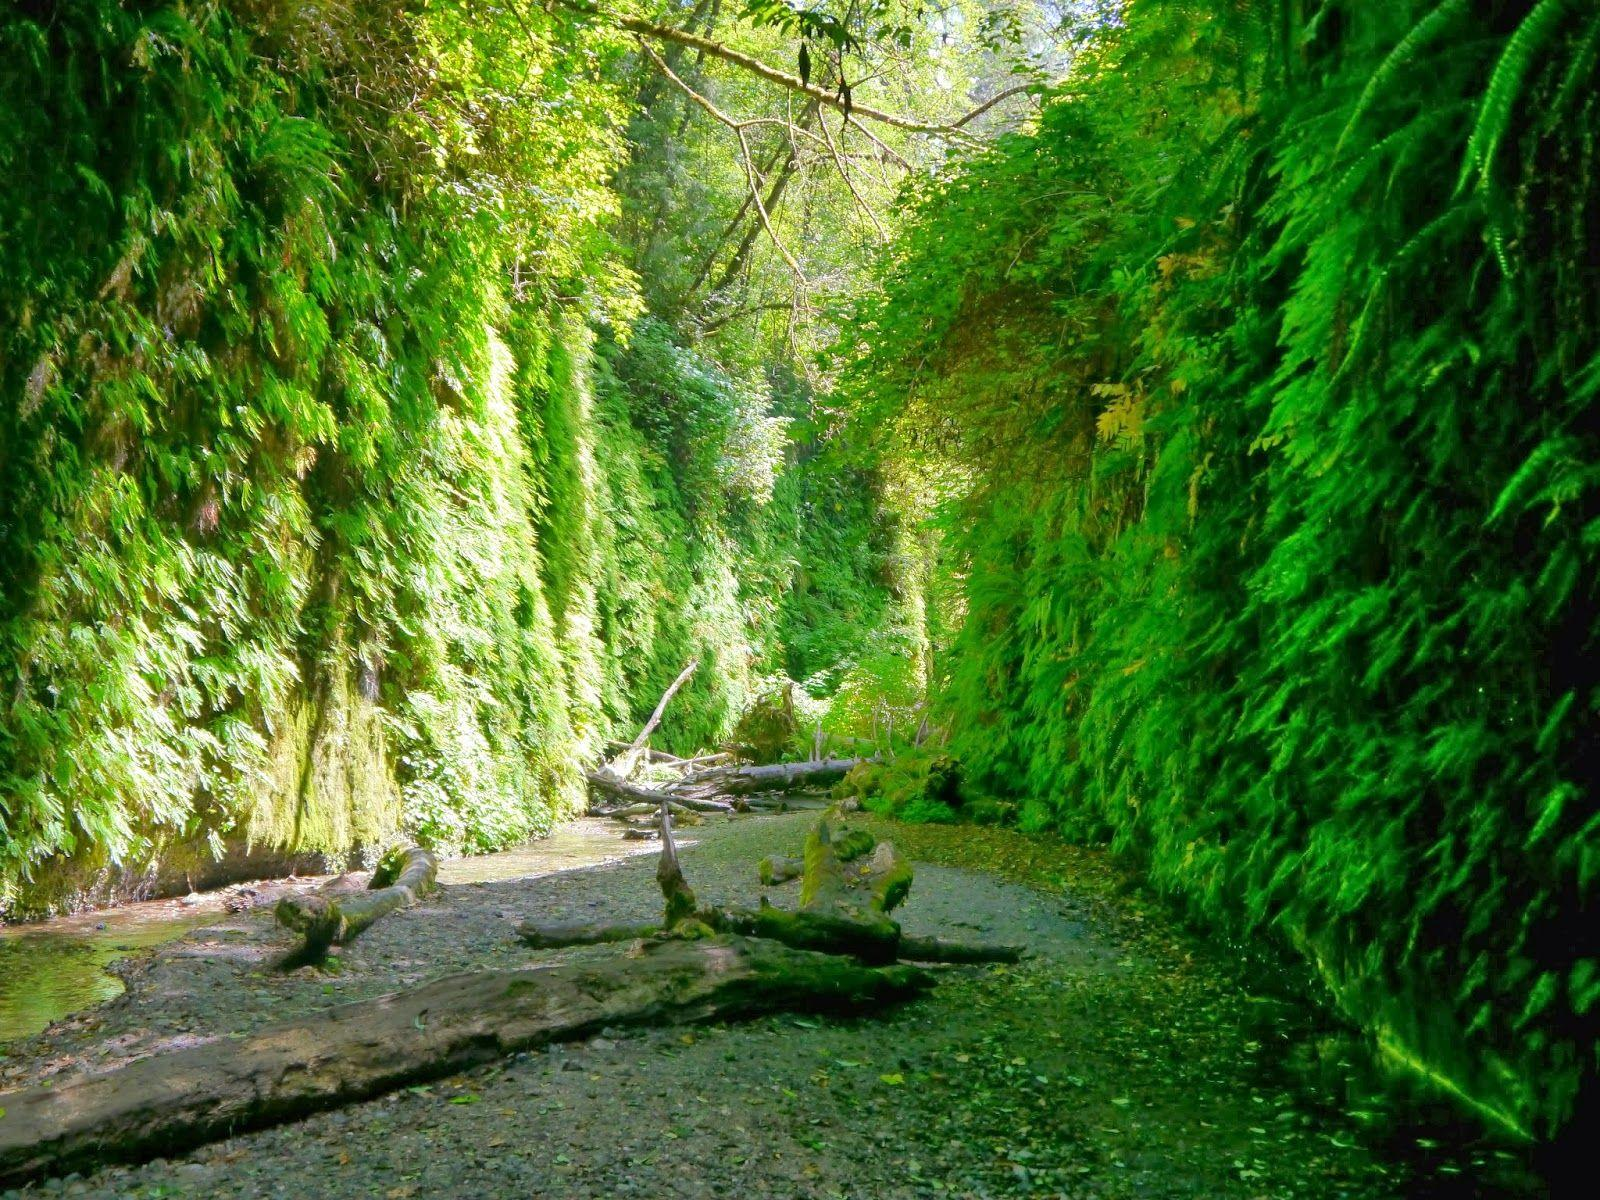 American Travel Journal: Fern Canyon Trail